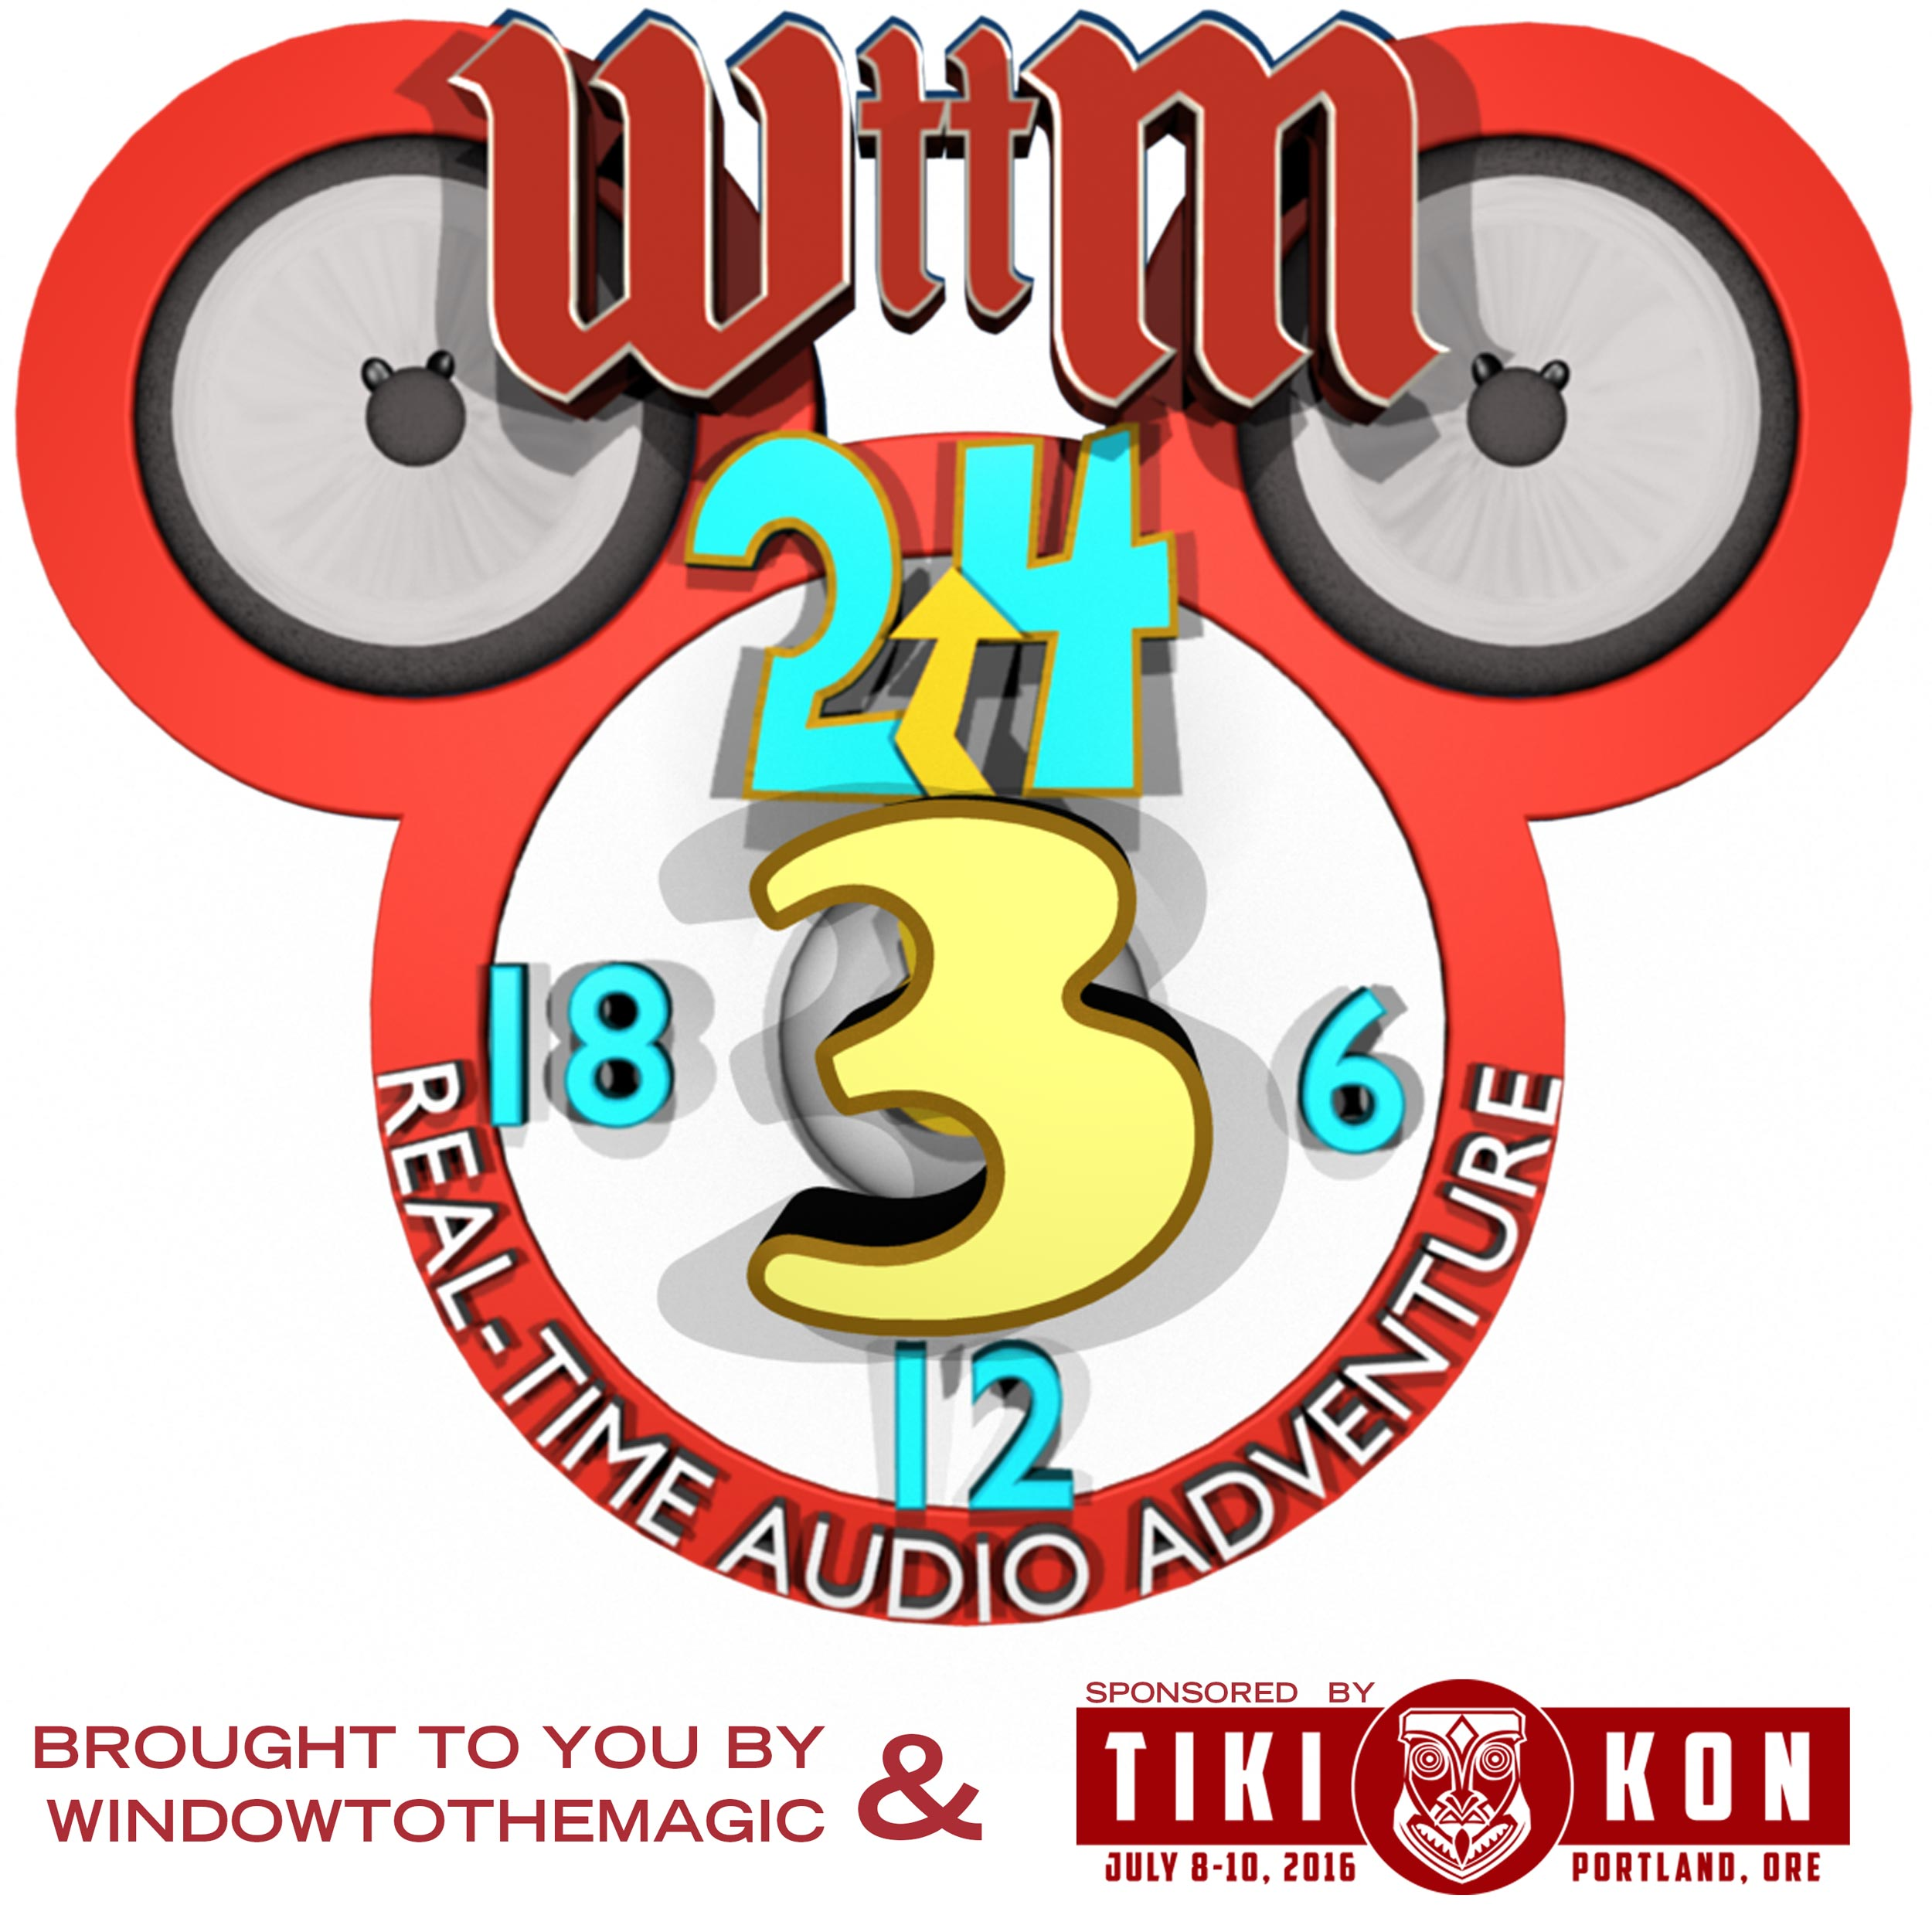 A WINDOW TO THE MAGIC: WTTM24 show image